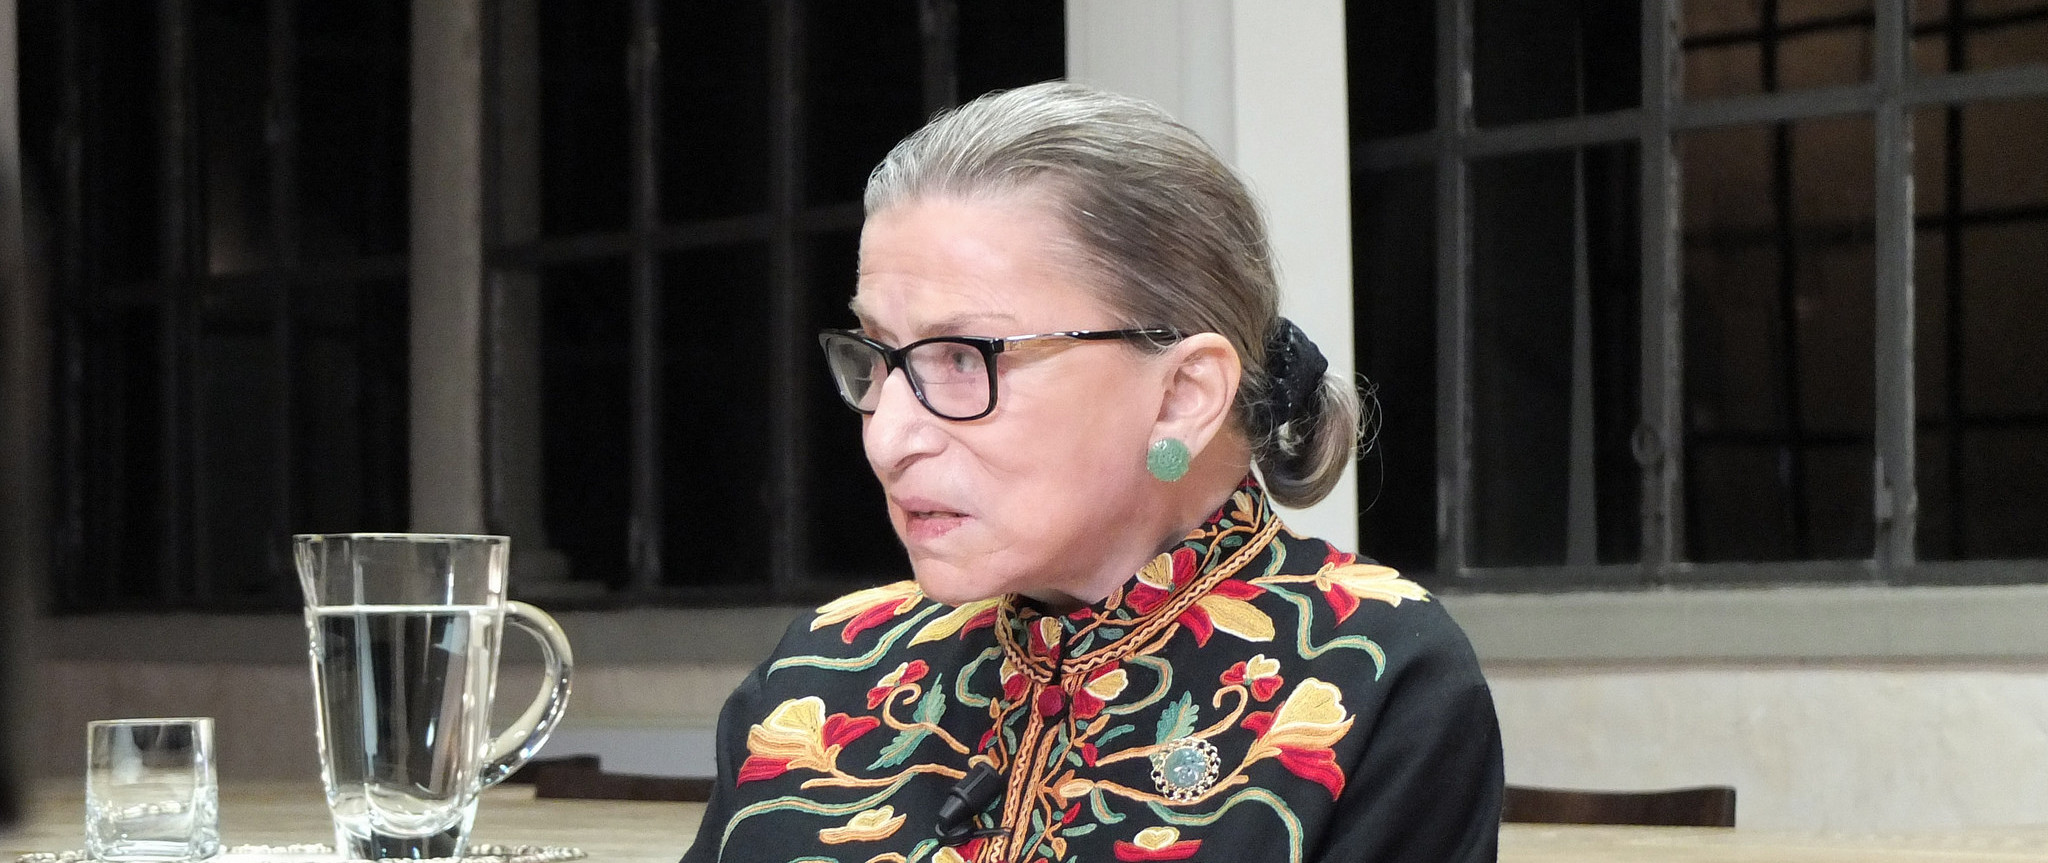 BREAKING: Ruth Bader Ginsburg Hospitalized